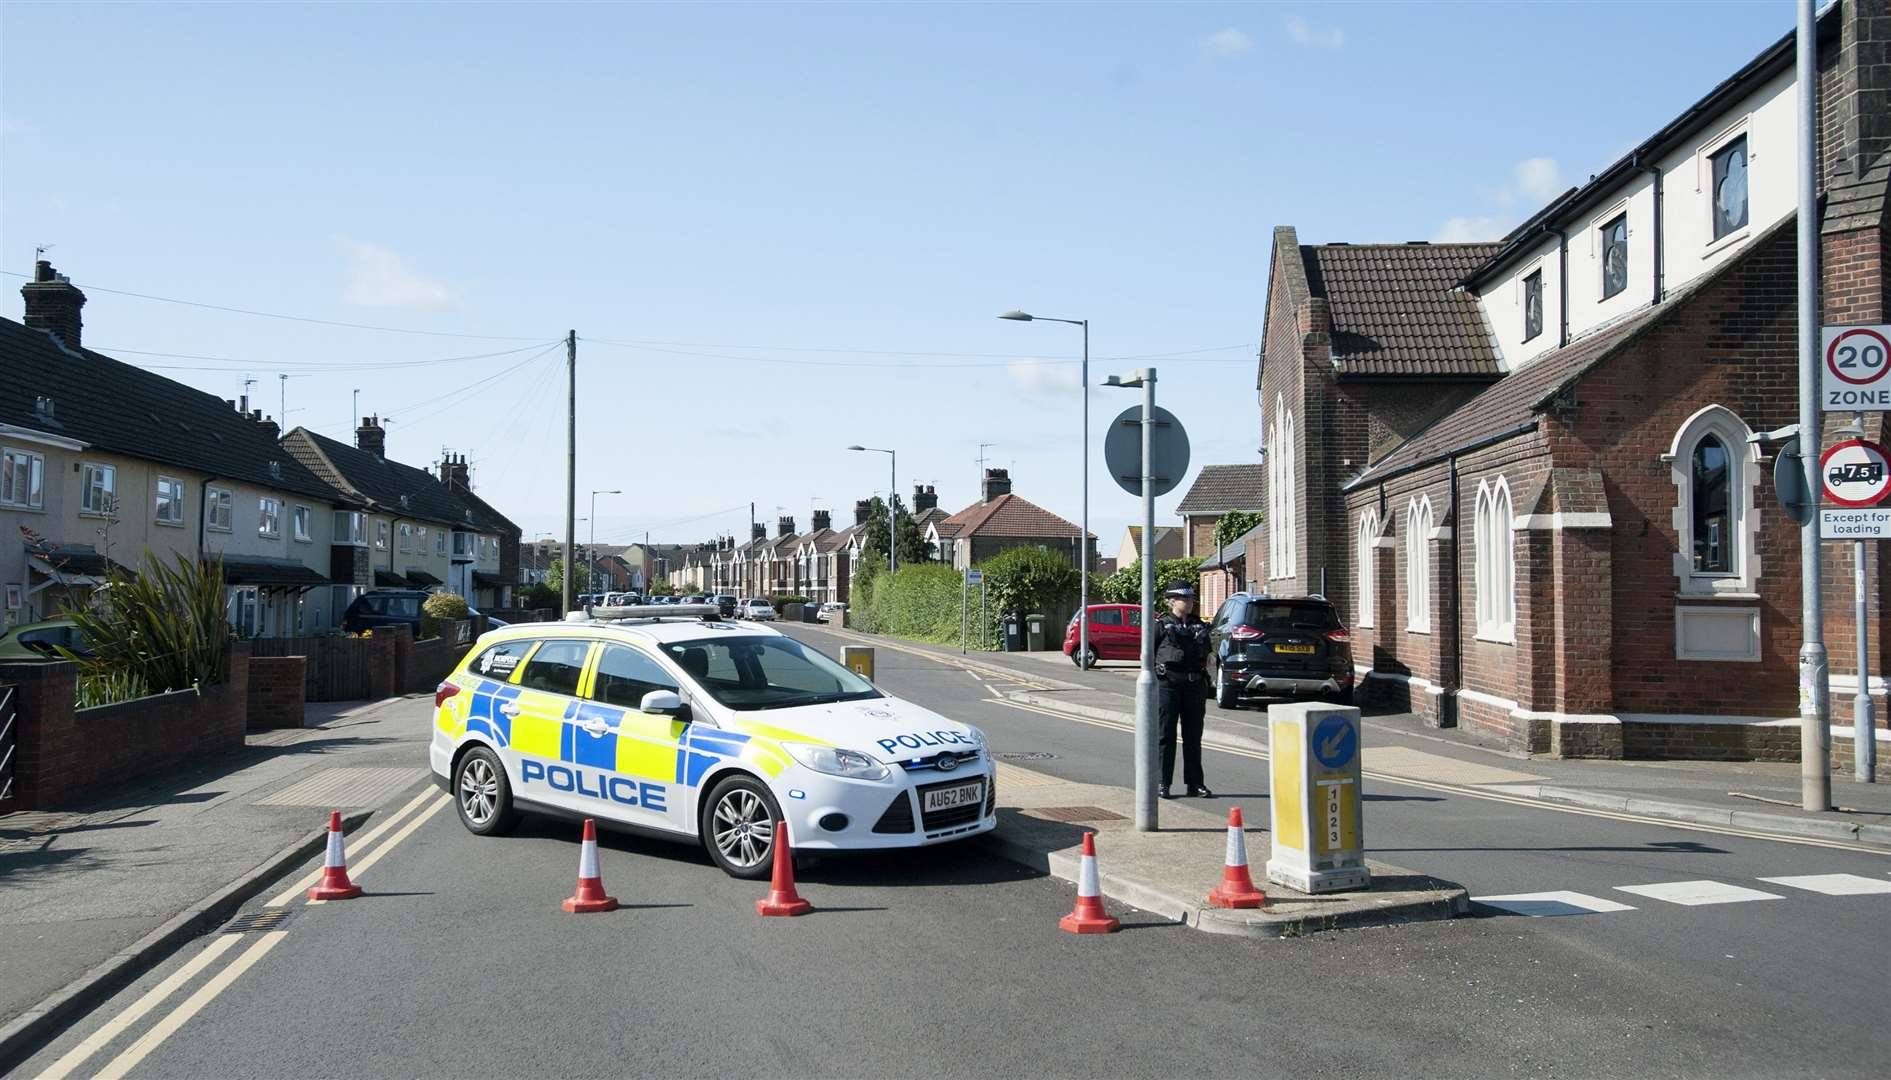 A police cordon was in place around the scene of yesterday's incident